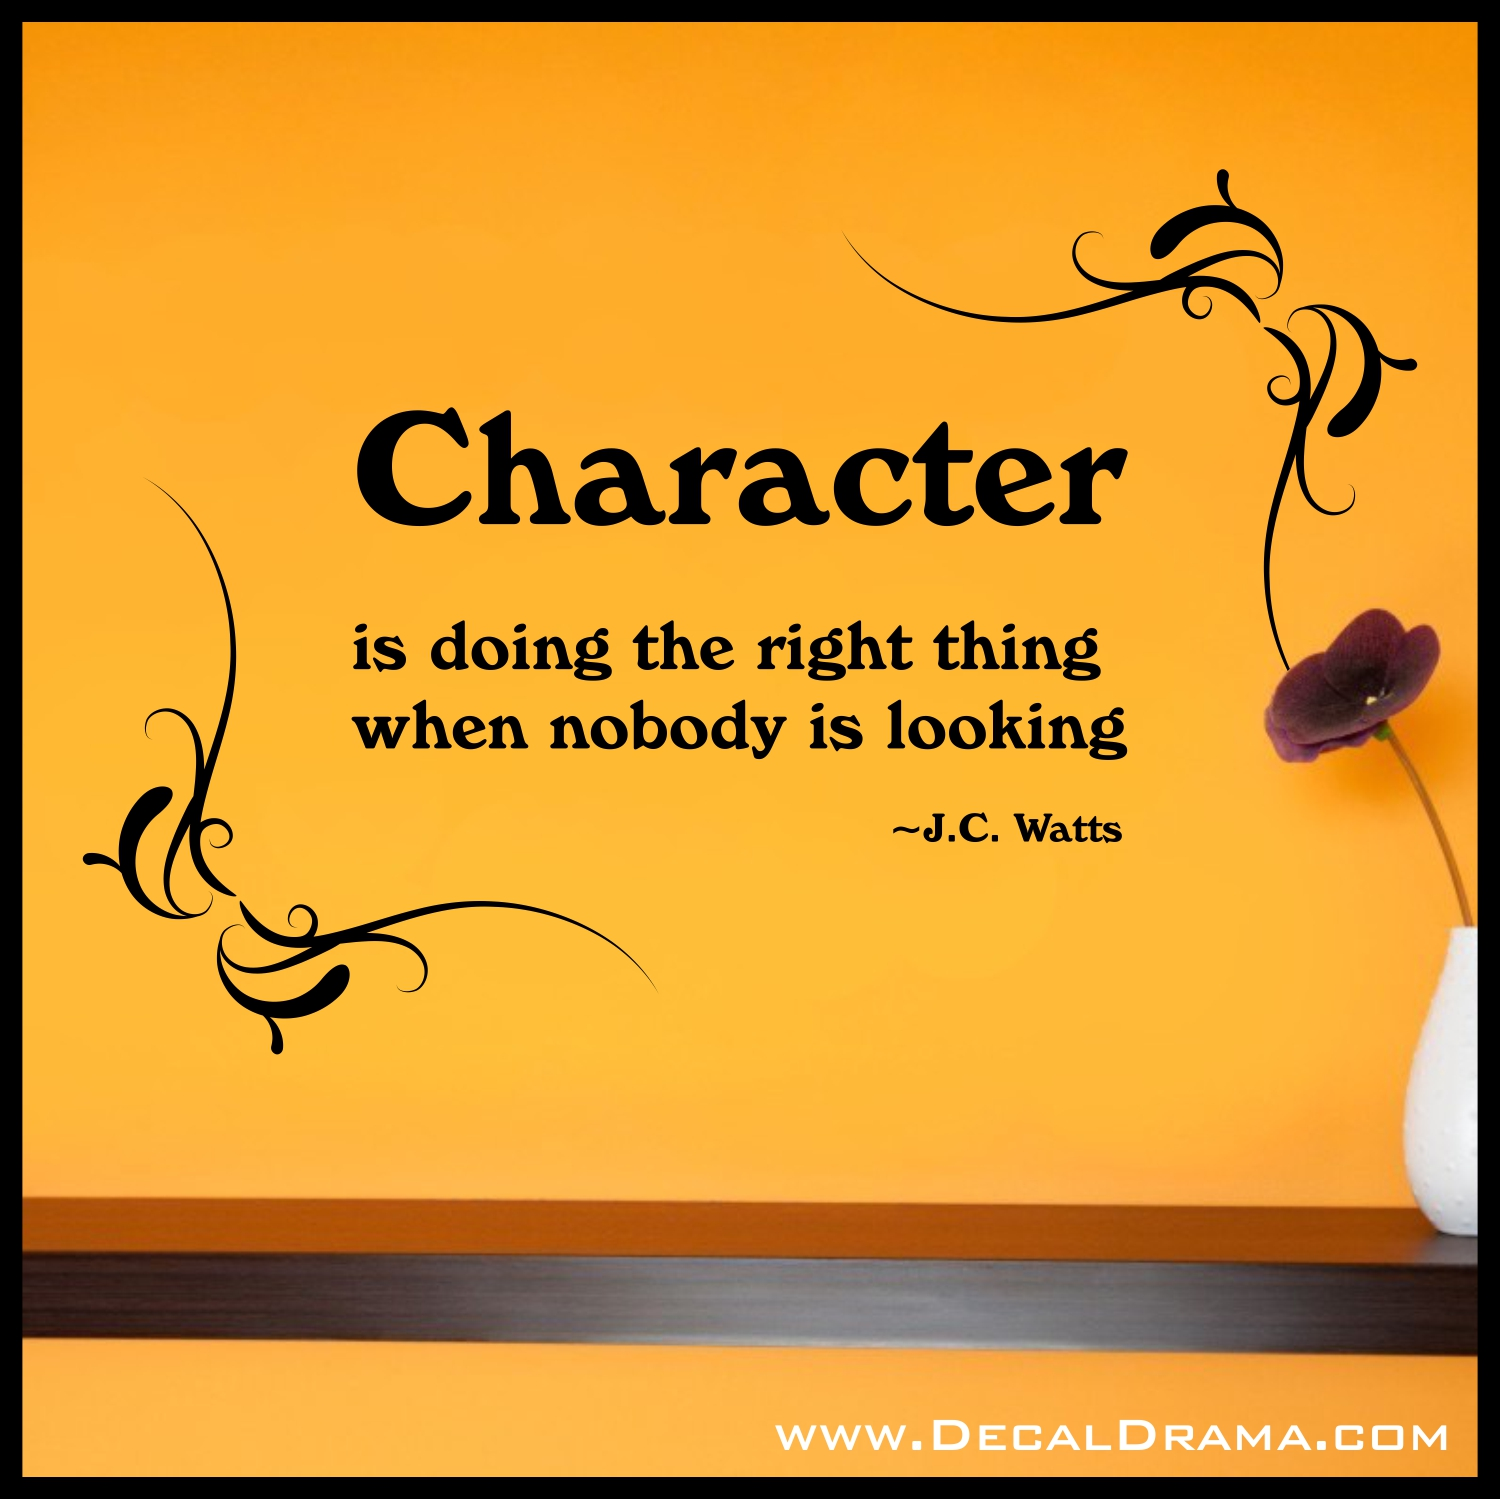 Character (definition) from J.C. Watts Vinyl Wall Decal on Storenvy